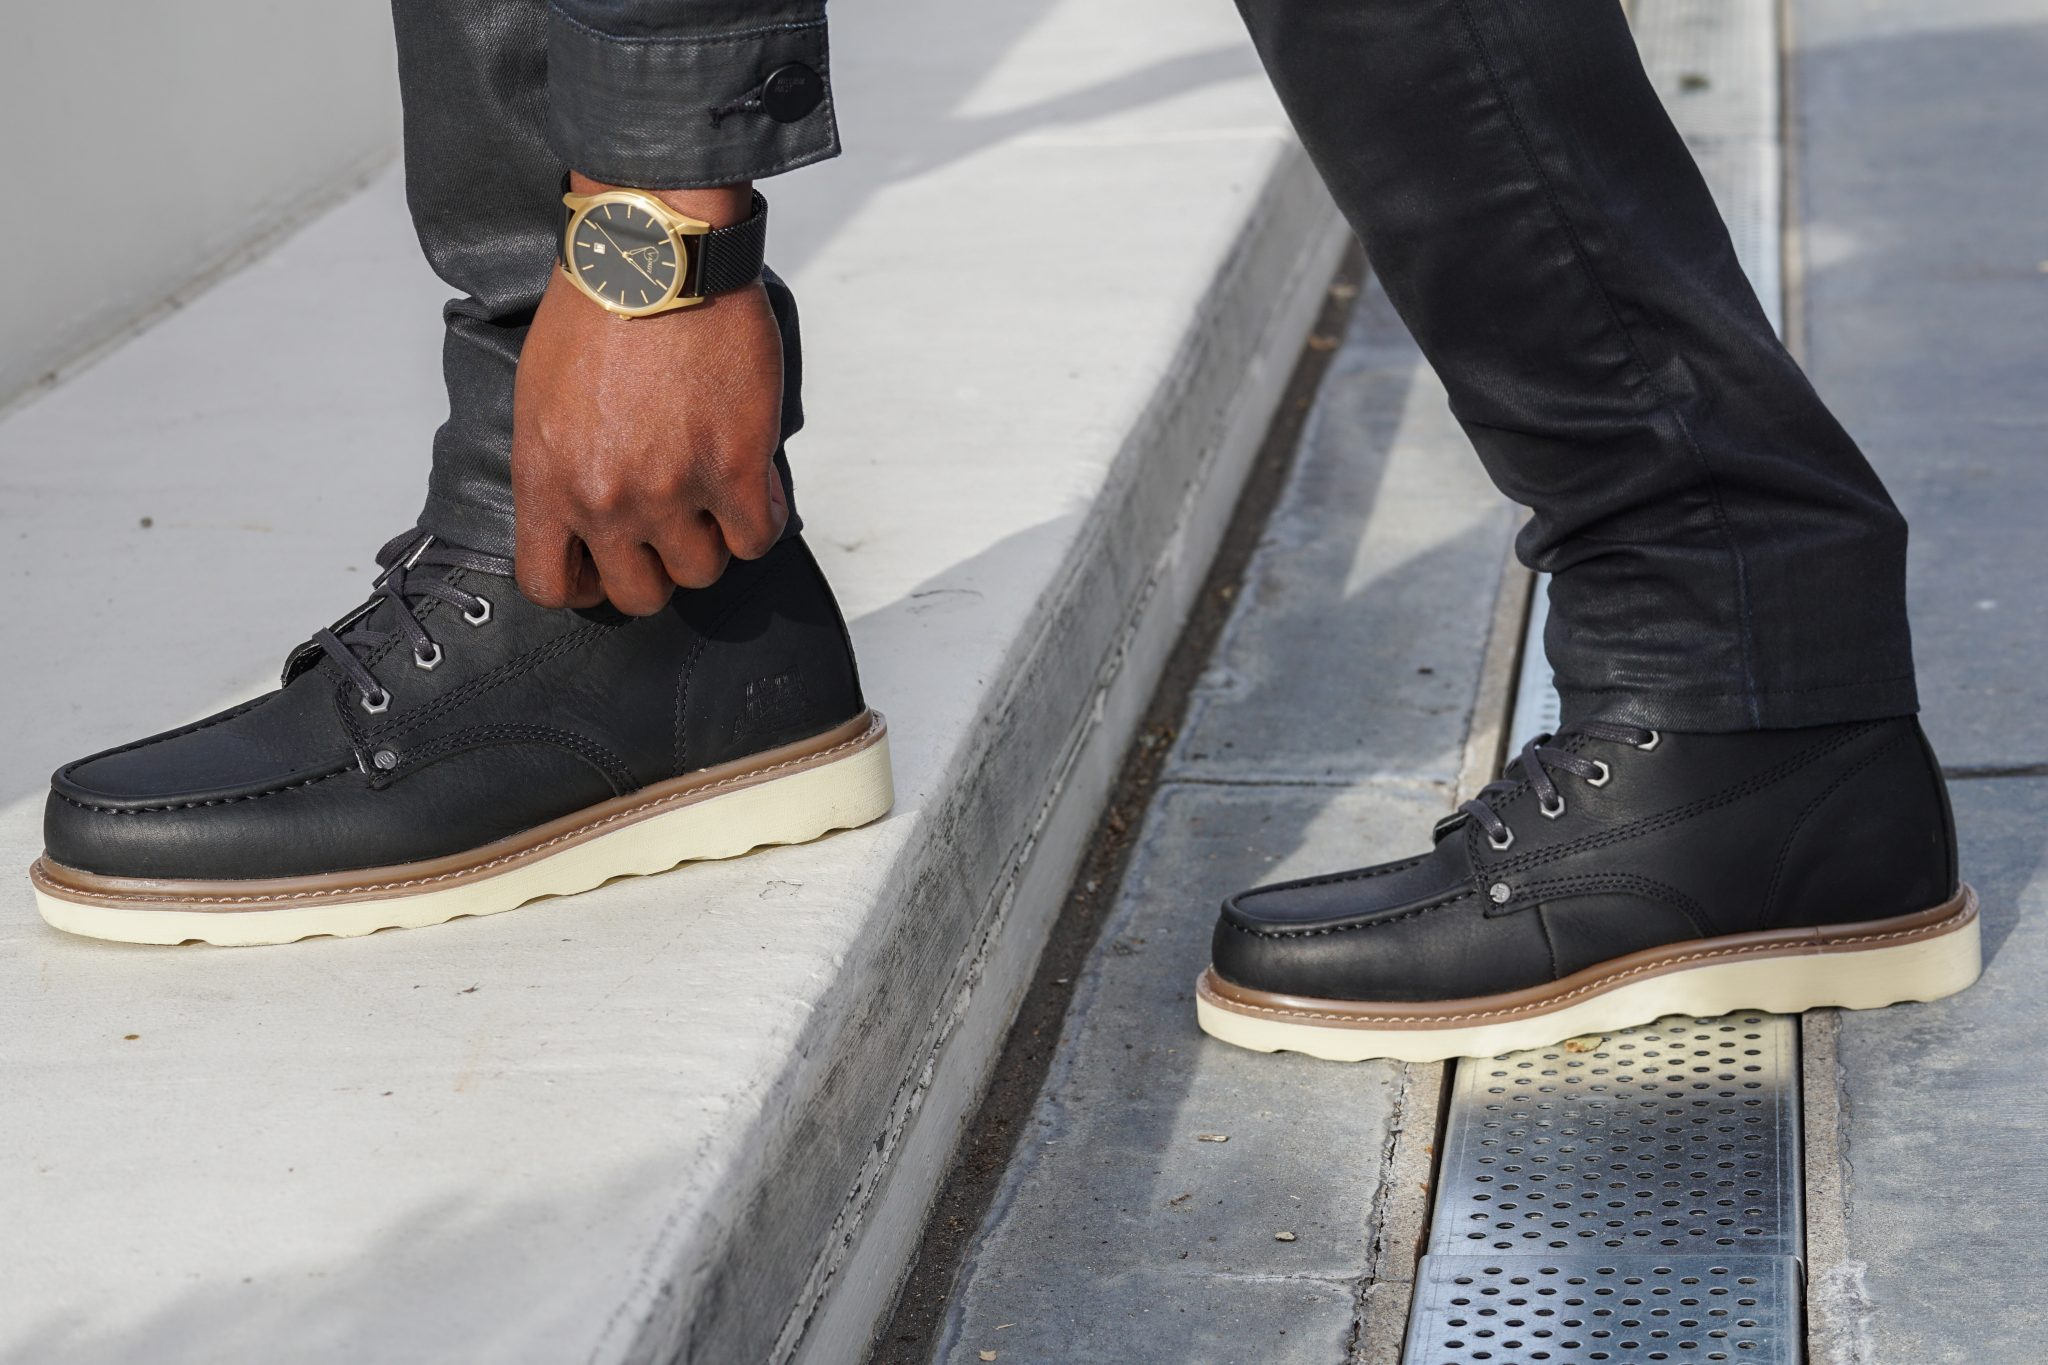 dapper-advisor-waxed denim-wax-clothing-waxed-denim-jeans-jacket-black-moc-toe-boots-5